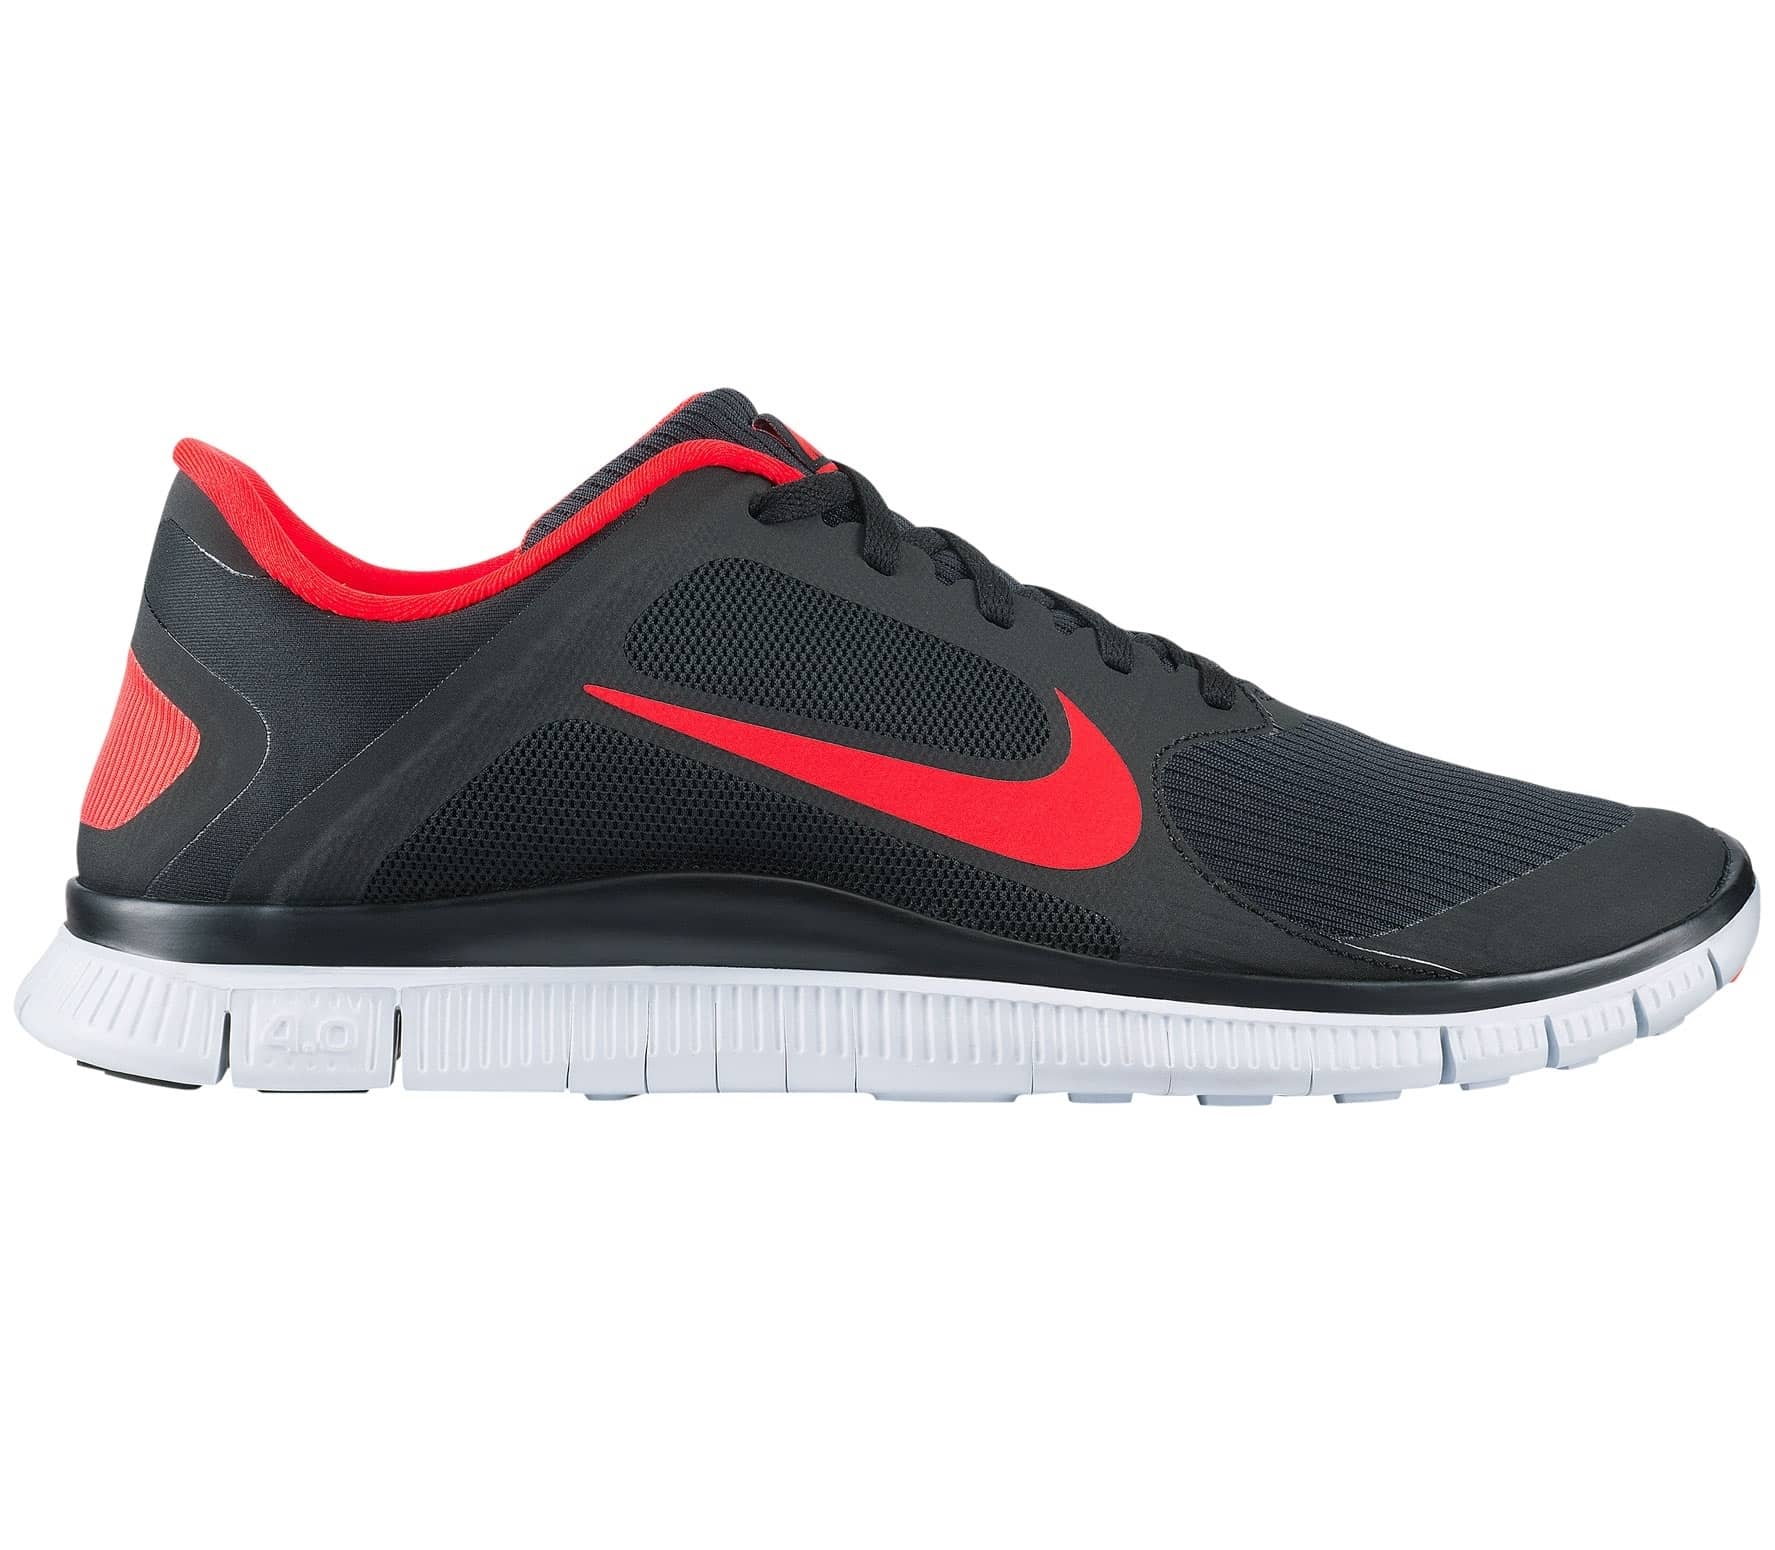 b372827cf94a Nike - Free 4.0 V3 men s running shoes (black red) - buy it at the ...